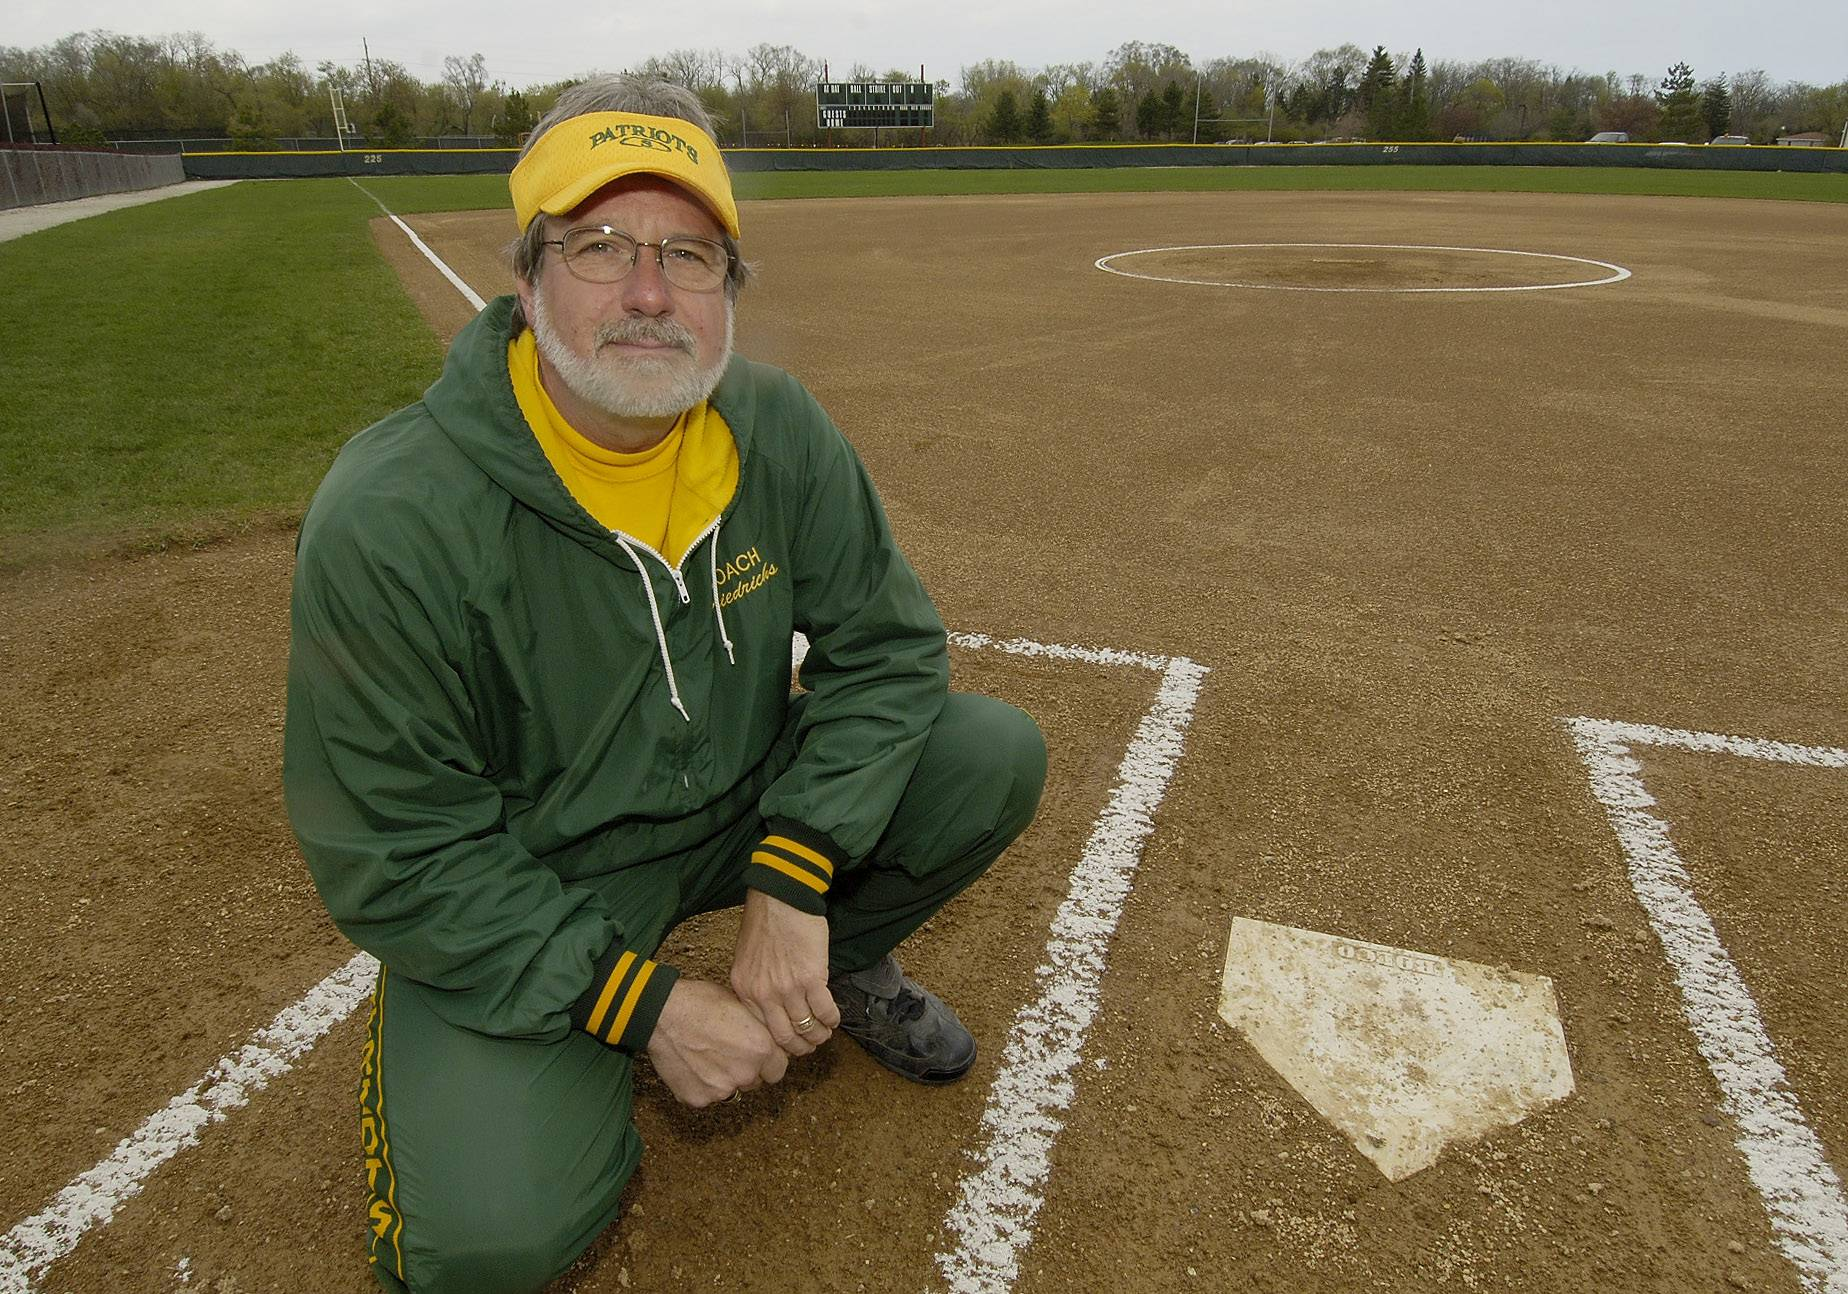 Stevenson softball coach Larry Friedrichs has earned career win No. 500.